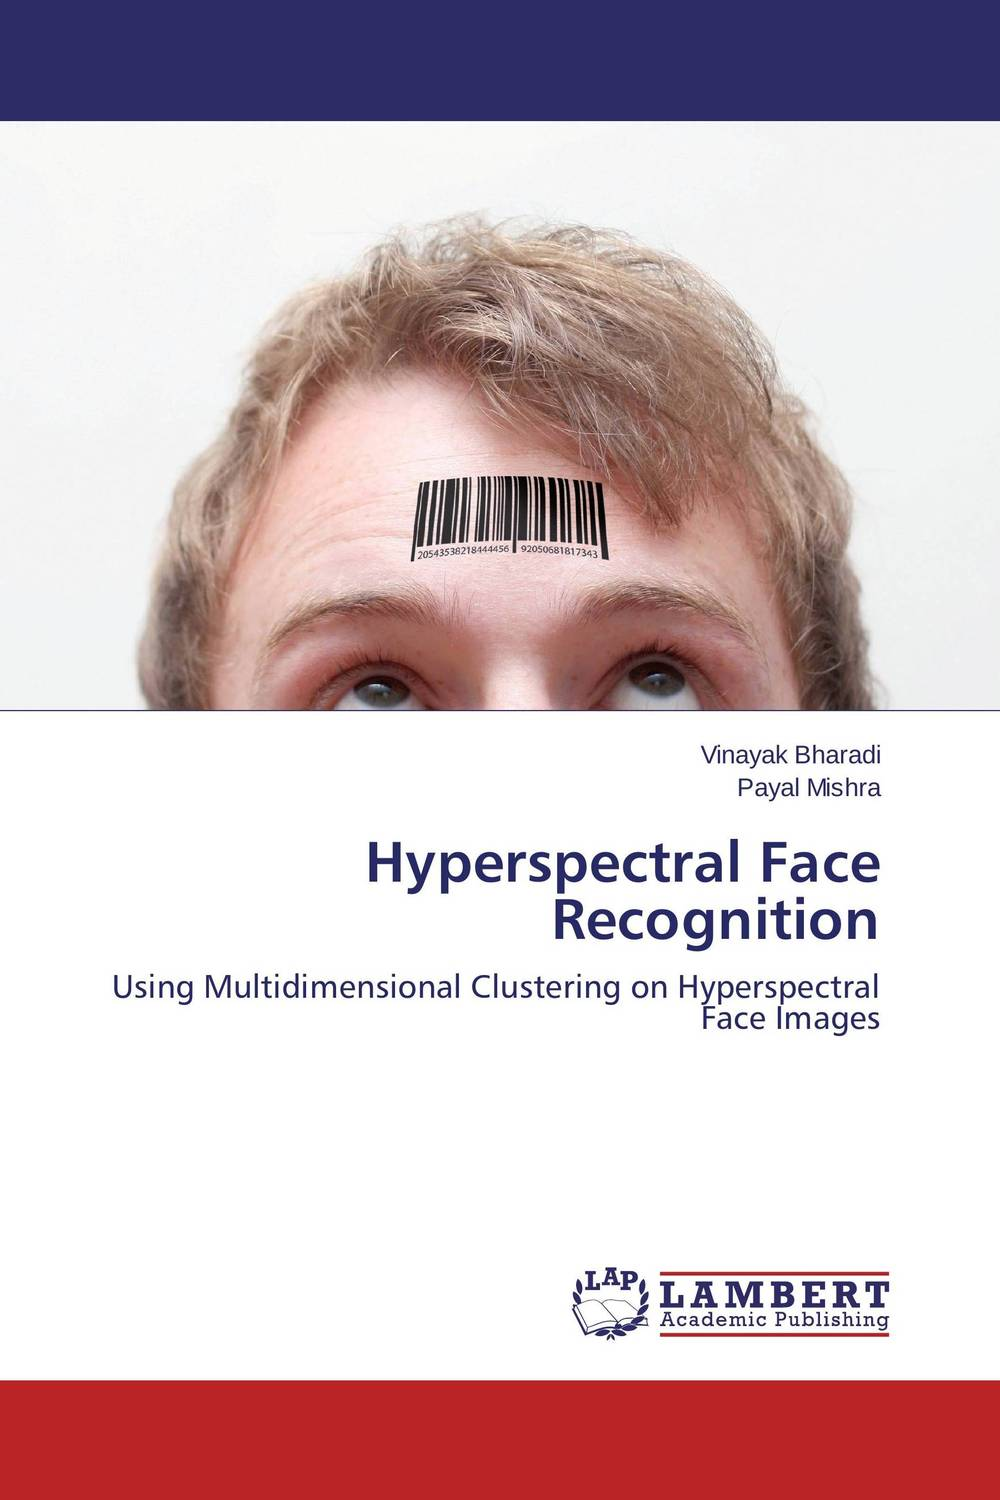 Hyperspectral Face Recognition a system for generation of face images from textual descriptions